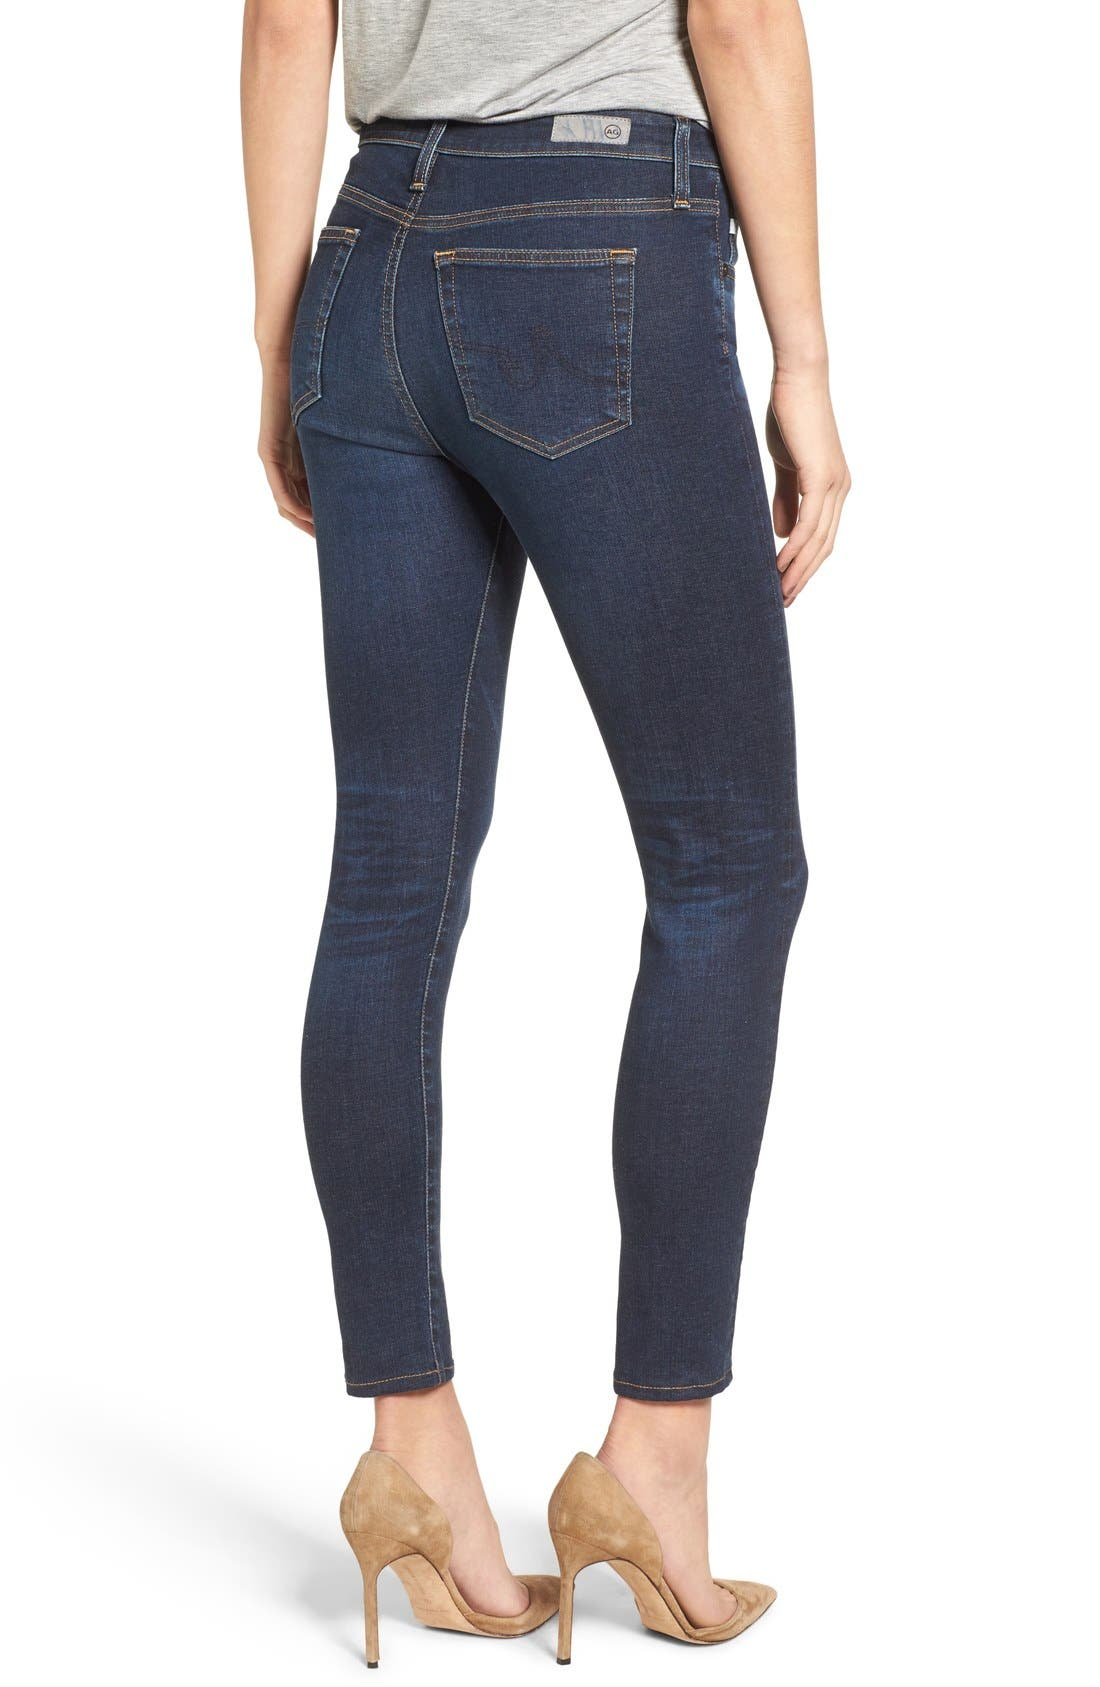 Alternate Image 2  - AG The Farrah High Waist Ankle Skinny Jeans (02 Years Beginnings) (Nordstrom Exclusive)